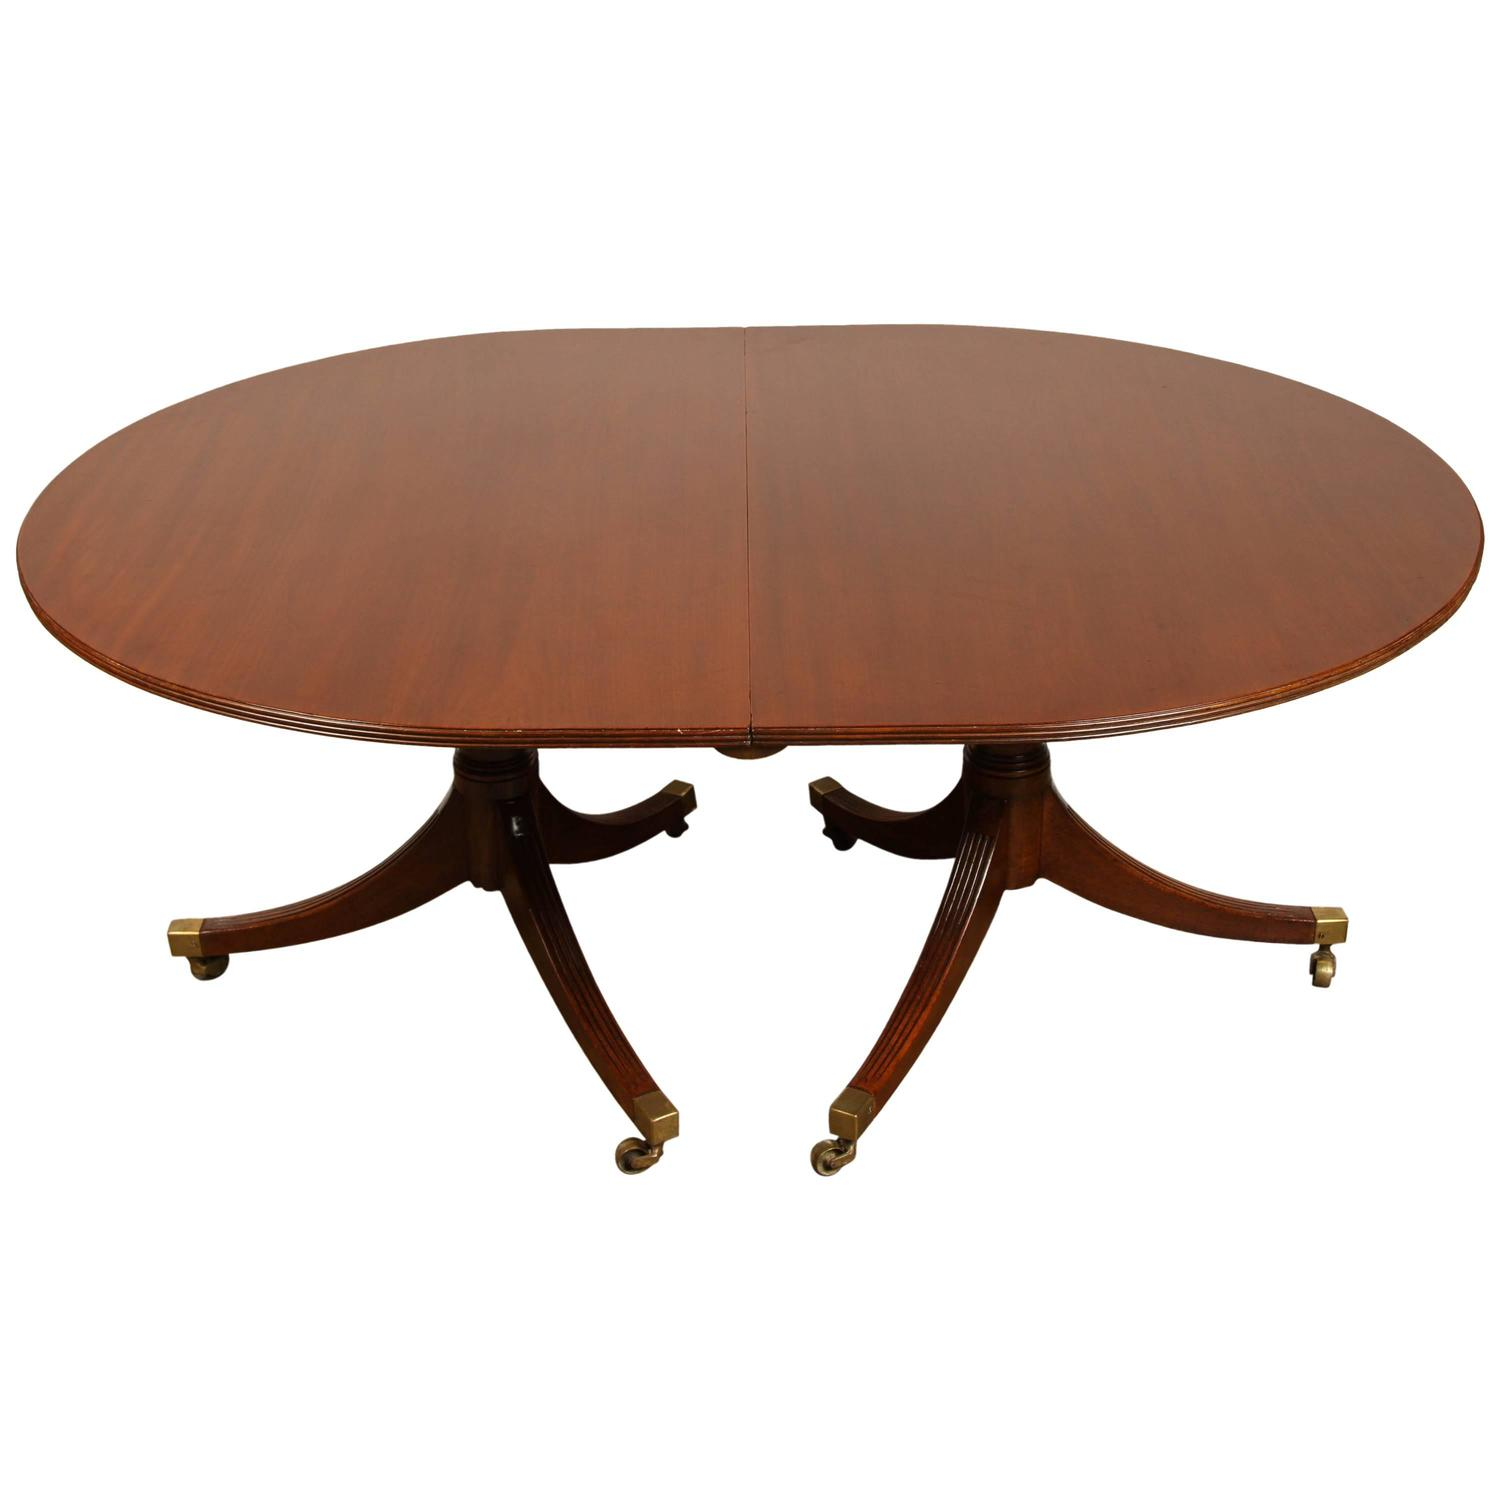 Double Pedestal English Regency Mahogany Dining Table For Sale At 1stdibs